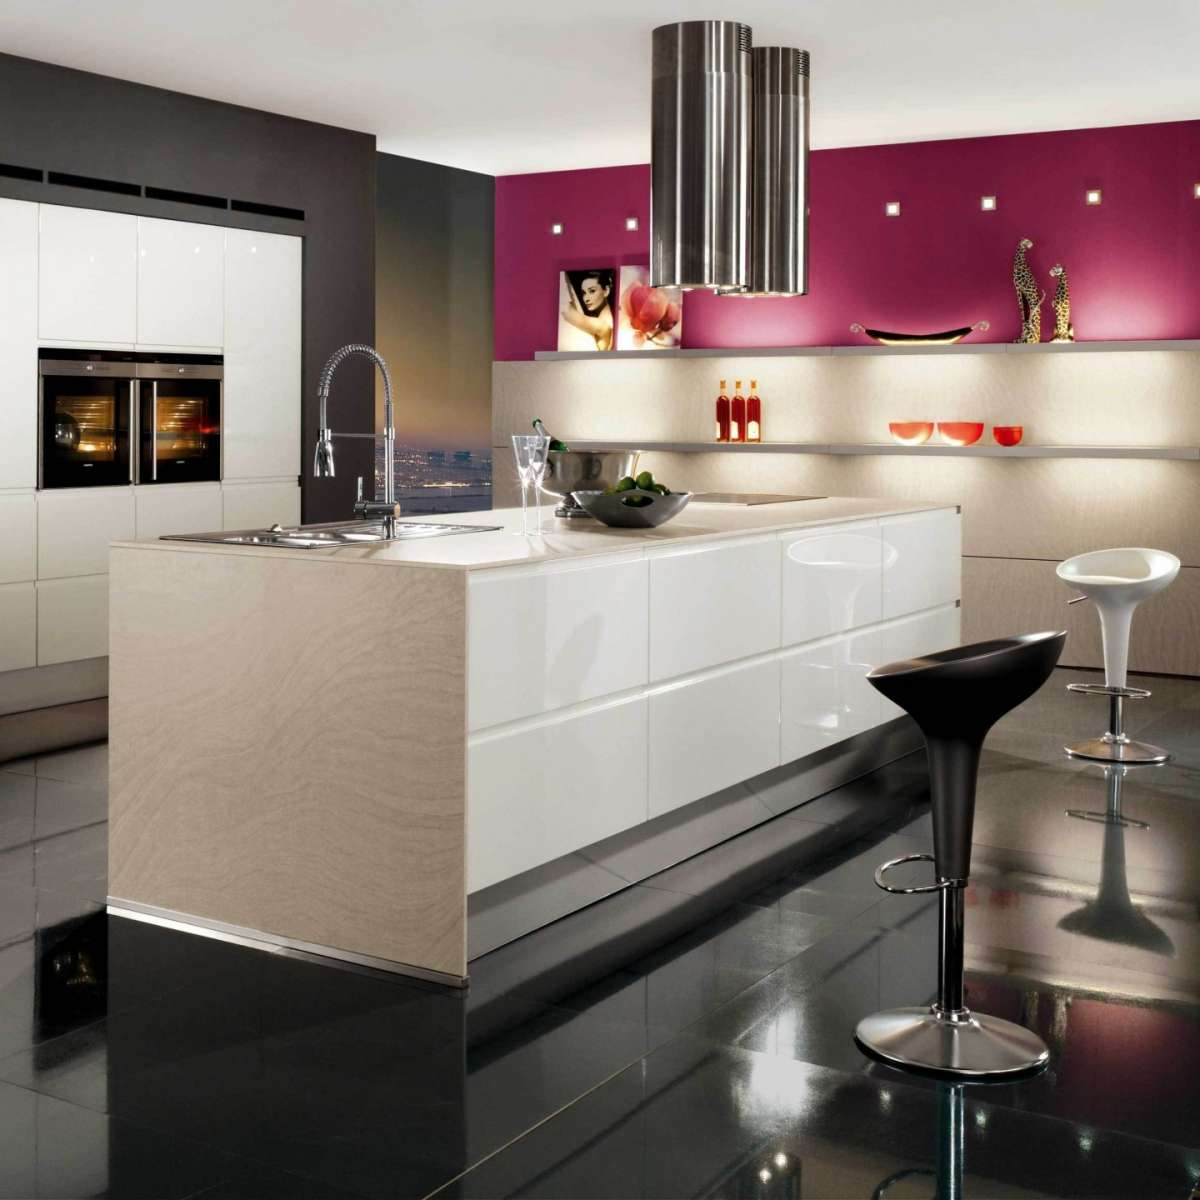 Dwg Cucine Con Isola. Fabulous Stunning Isola Cucina Dwg Images ...